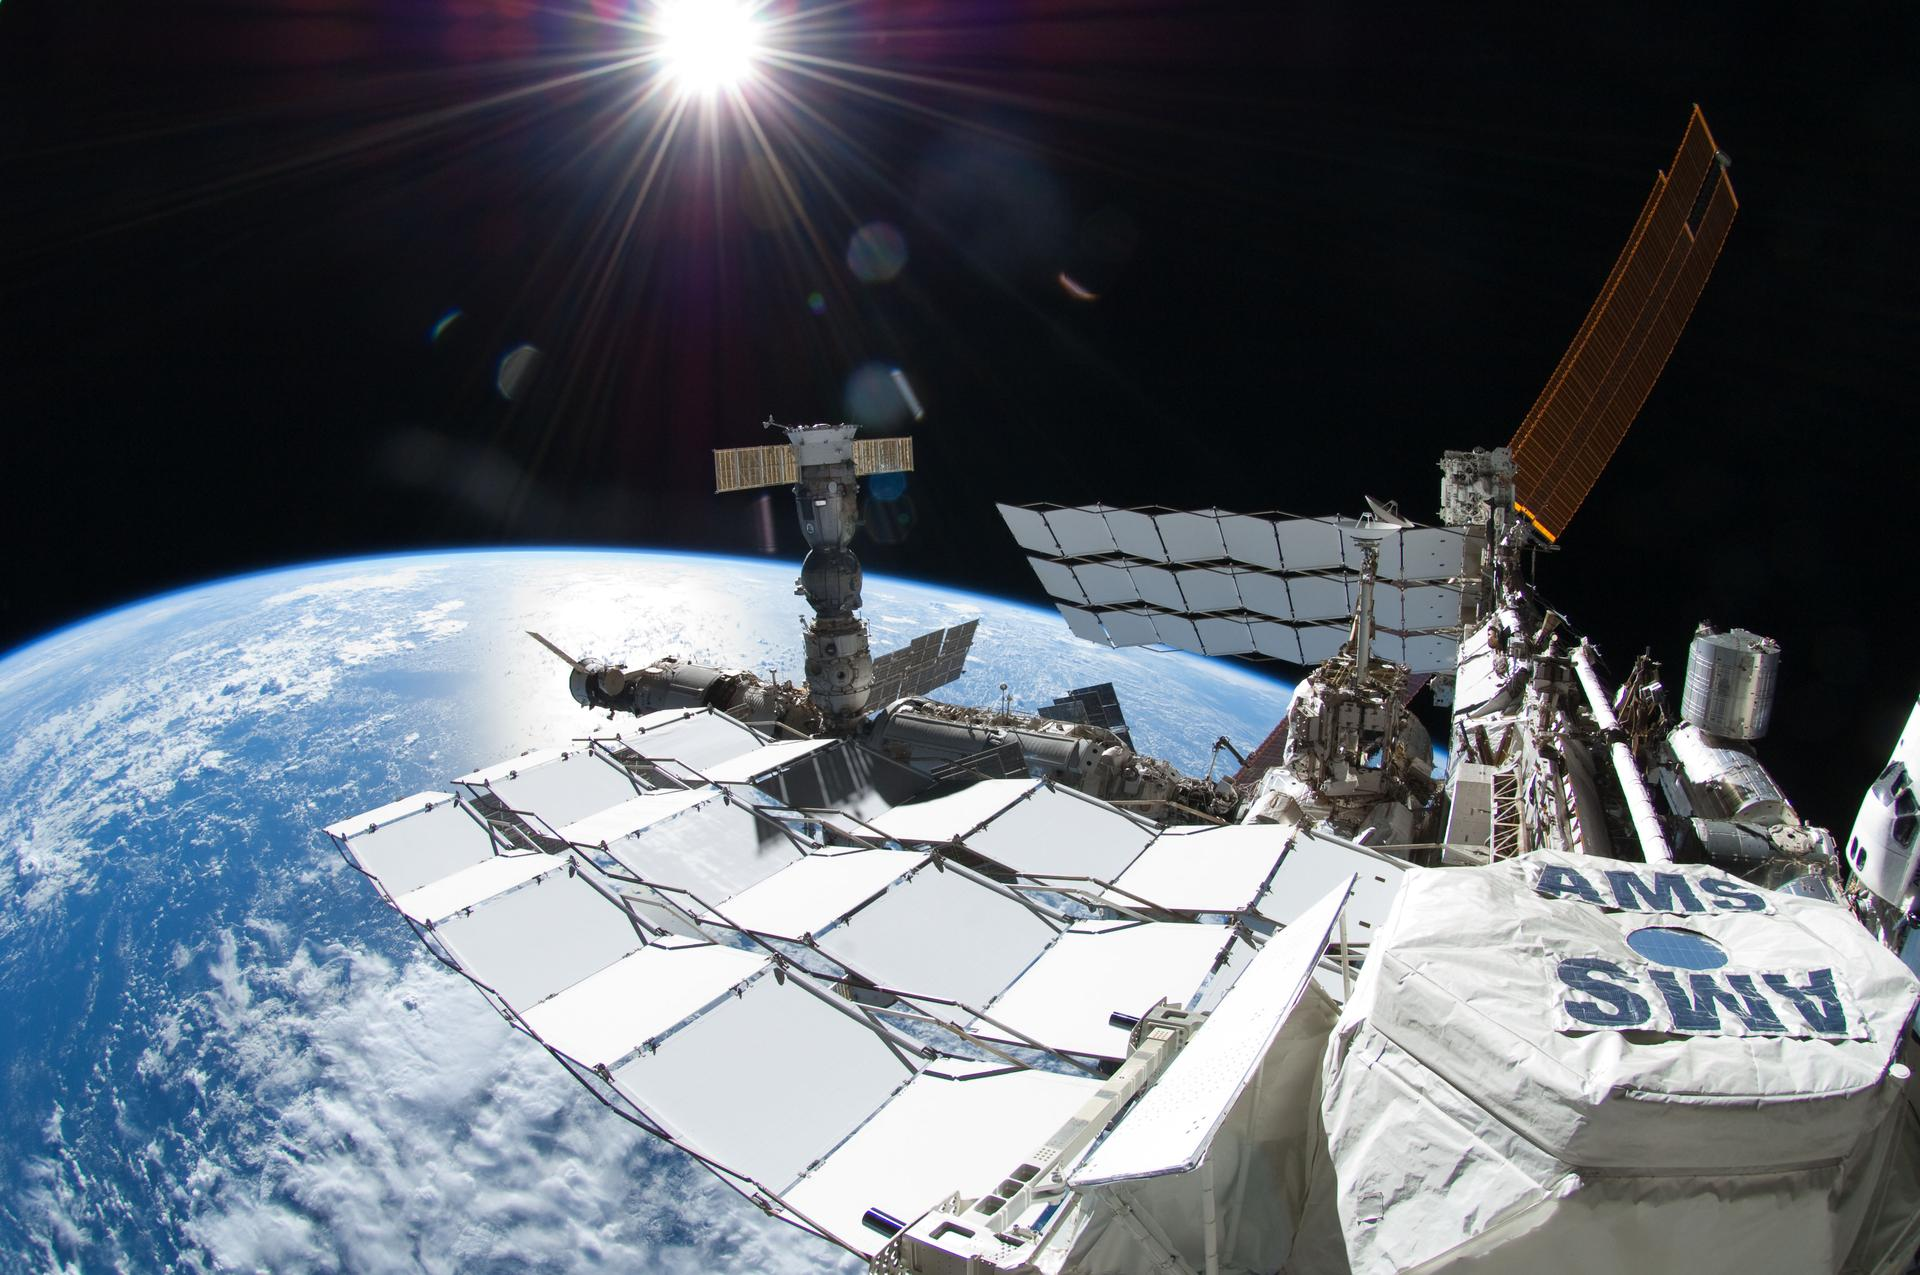 Astronauts Will Take 4 of the Most Challenging Spacewalks Ever to ...